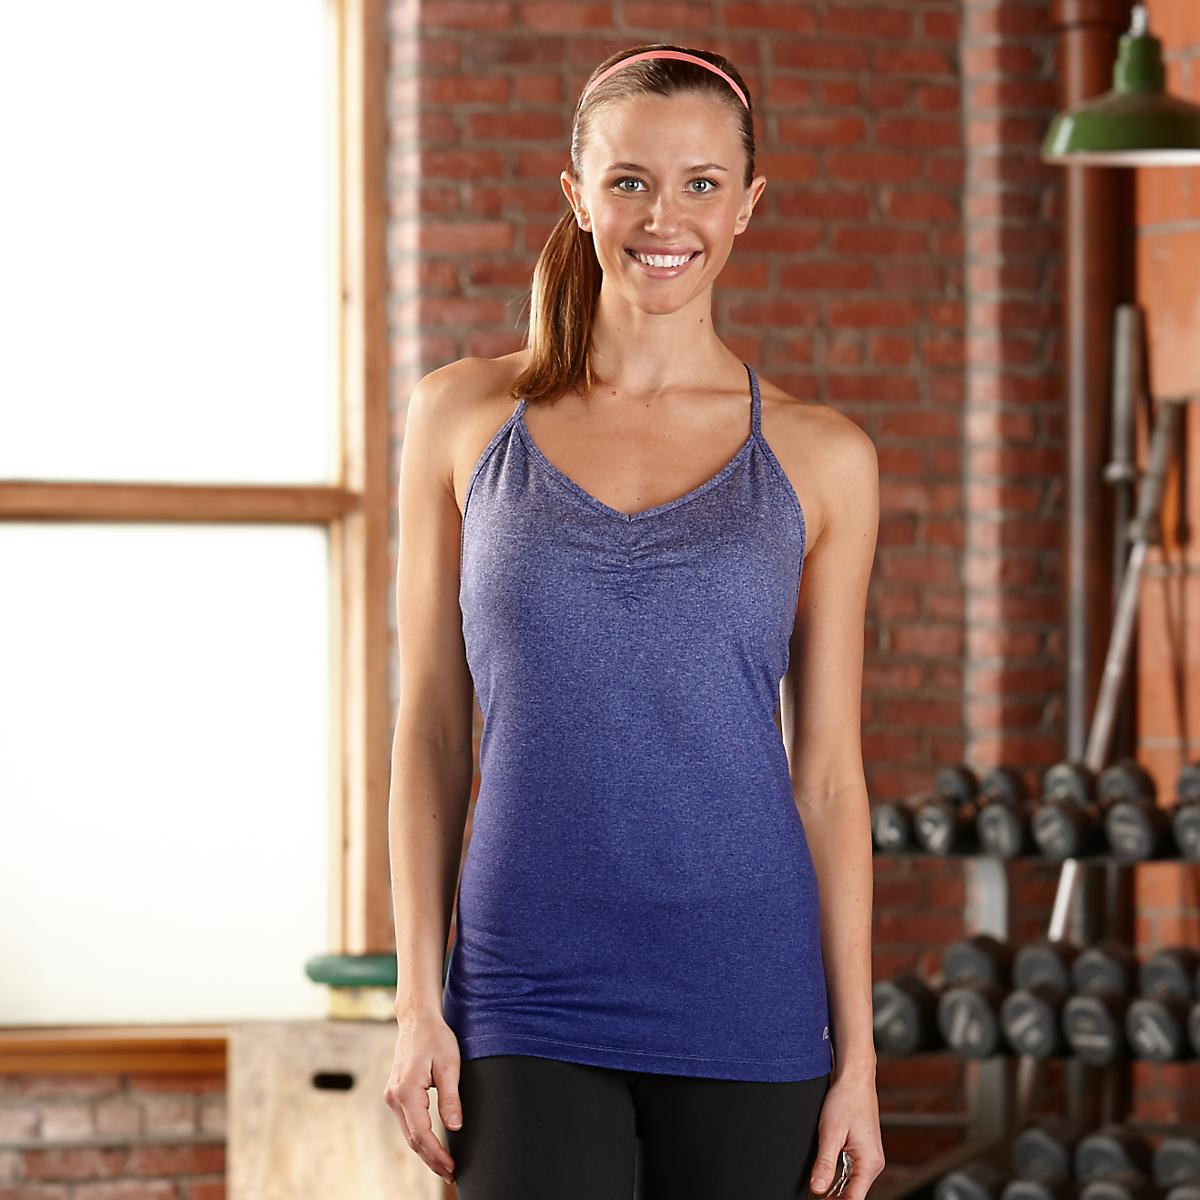 Women's R-Gear�Power Pose Bra Tank